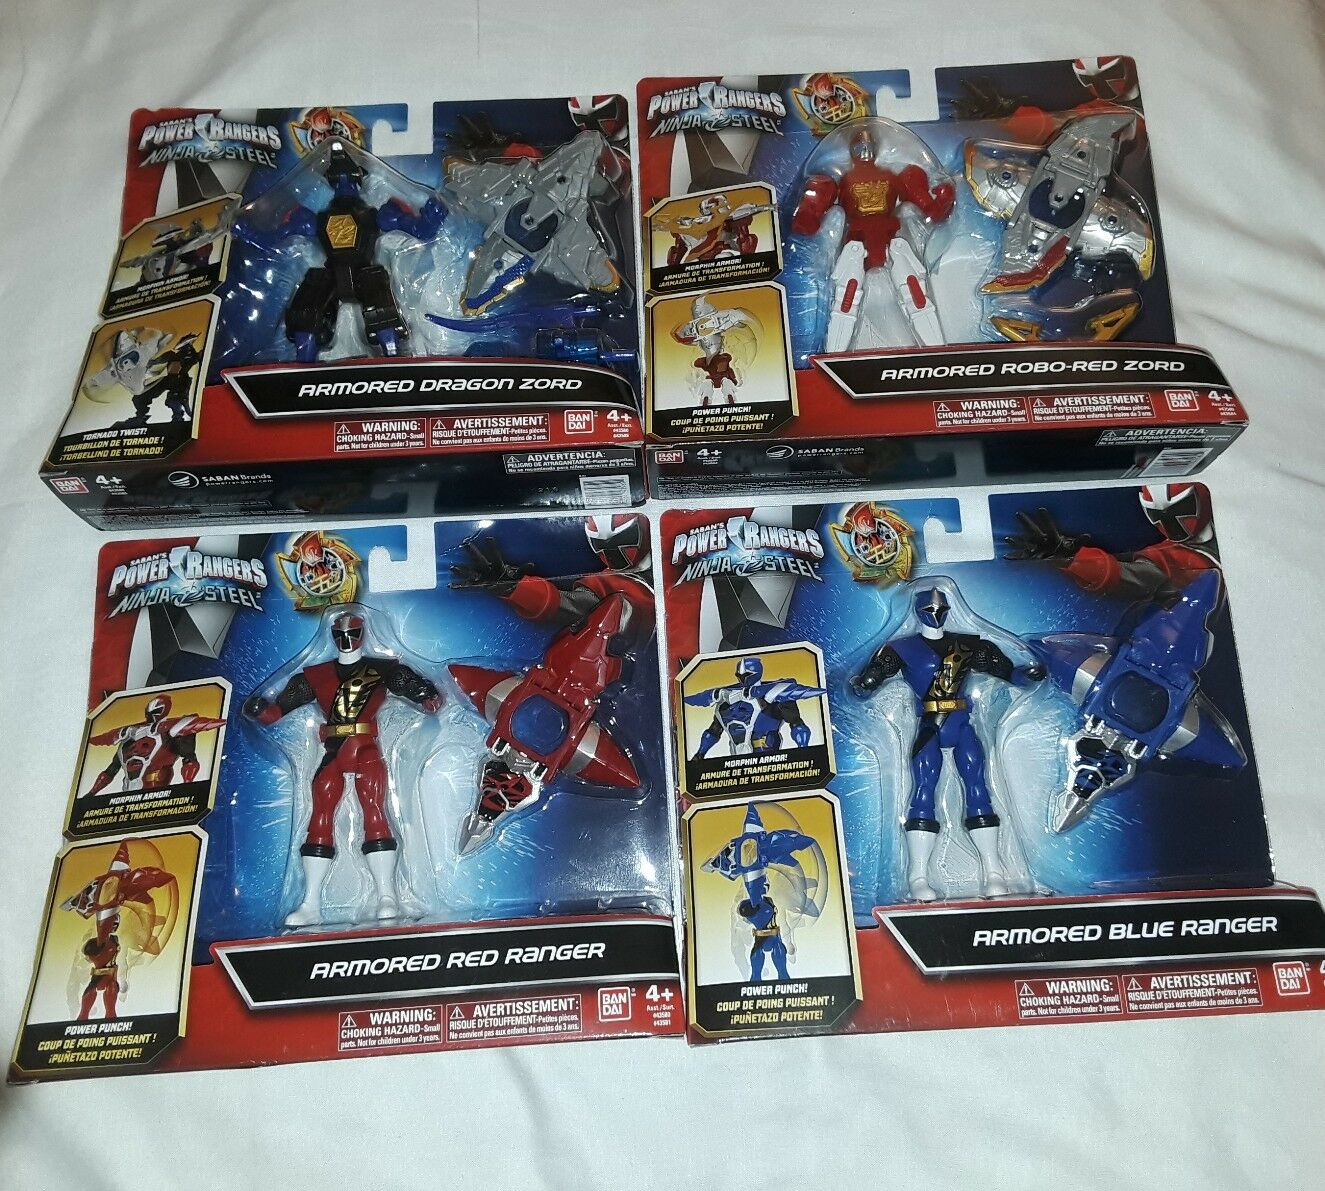 4 Power Rangers Ninja Steel ArmoROT Rangers